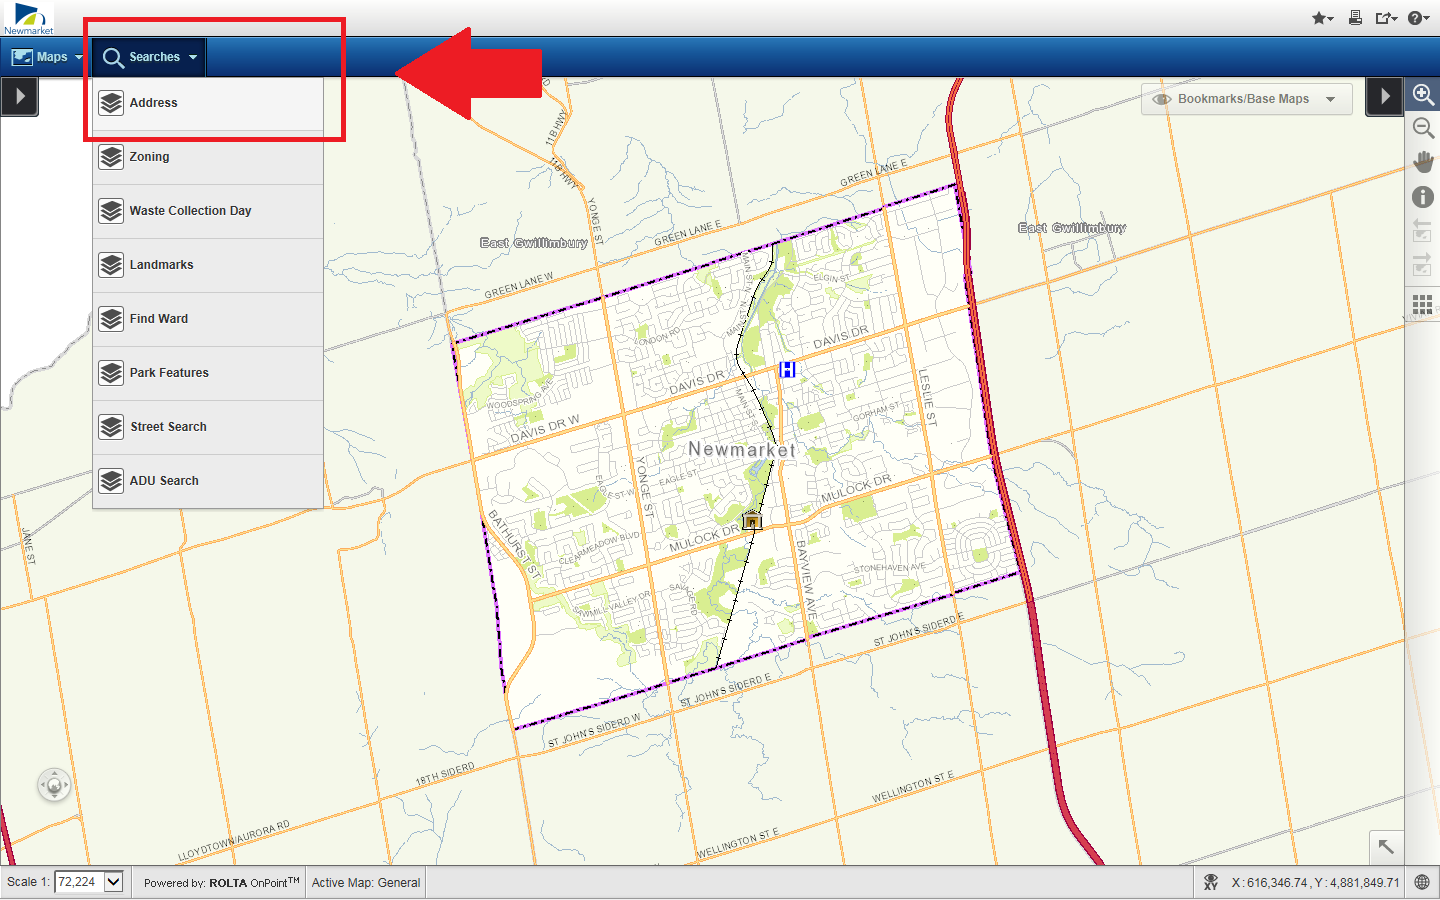 The Navigate Newmarket map, highlighting the address search in the top right.